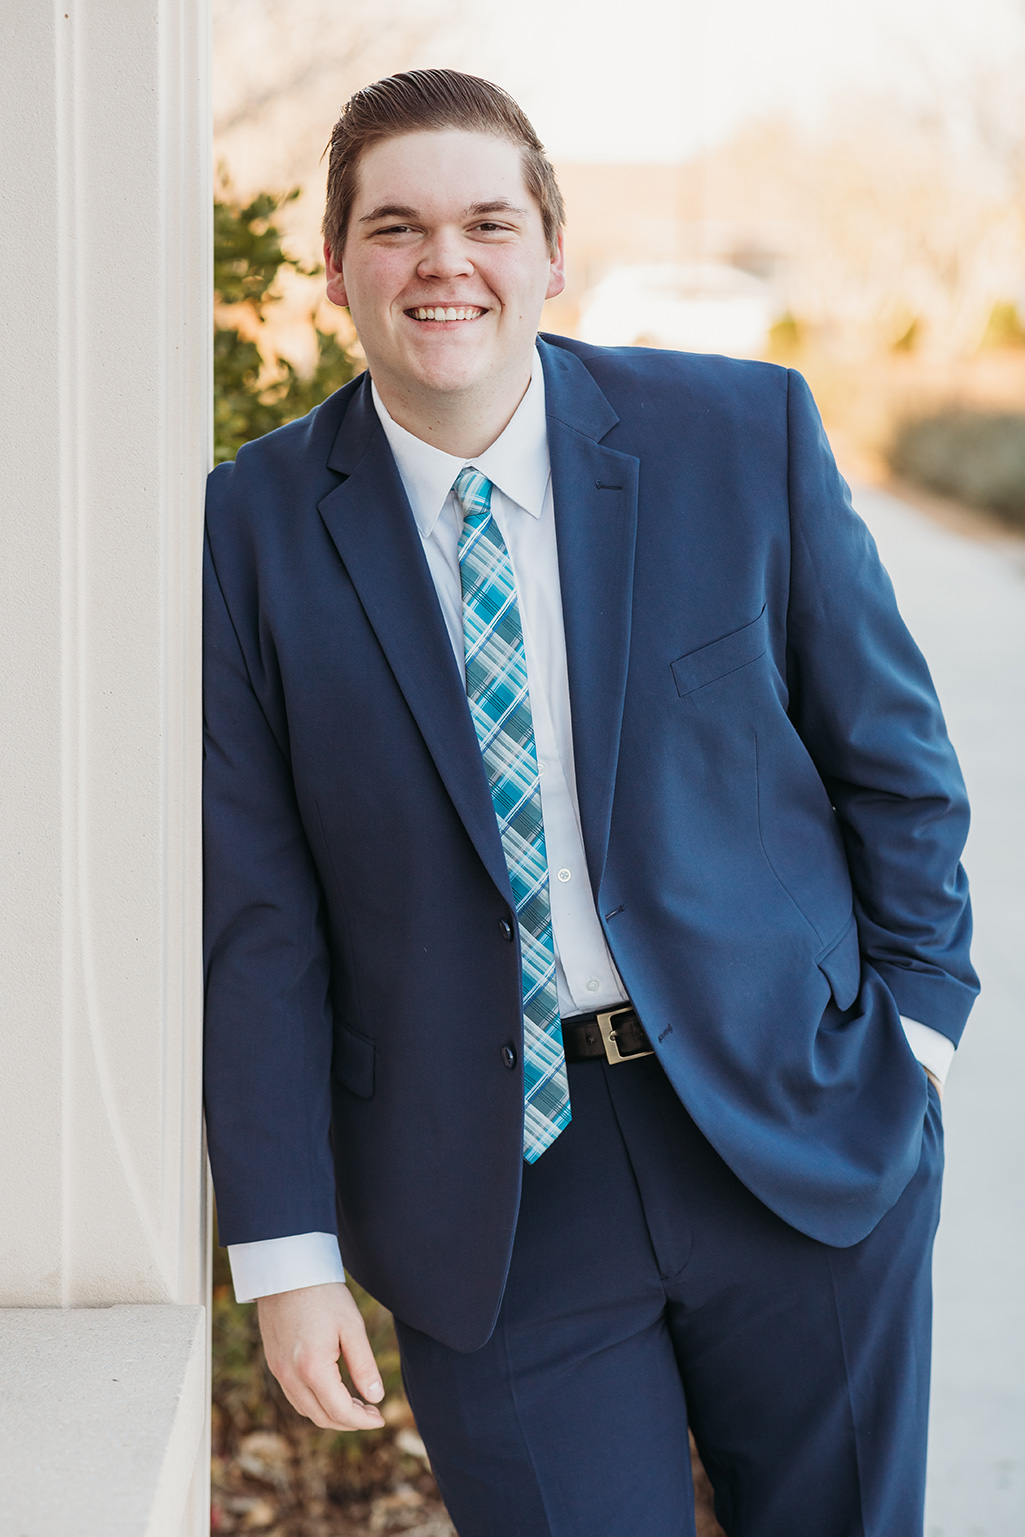 LDS missionary photoshoot in front of the gilbert arizona temple